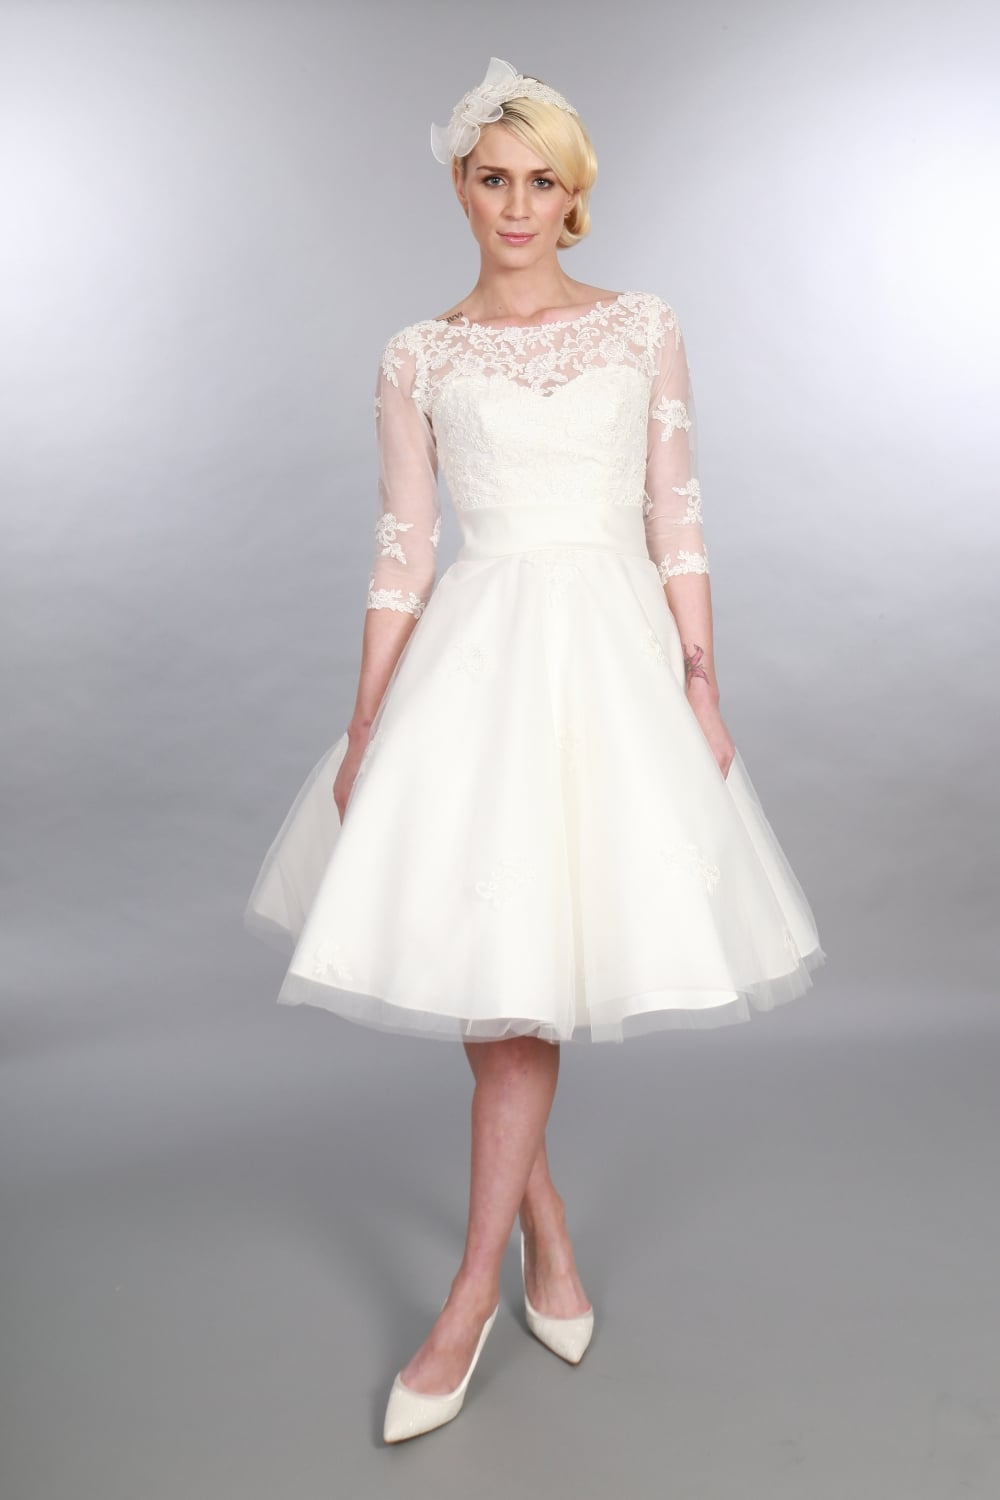 timeless chic polly tea length vintage 1950s style wedding dress sleeves p123 914 image - Vintage Wedding Gowns